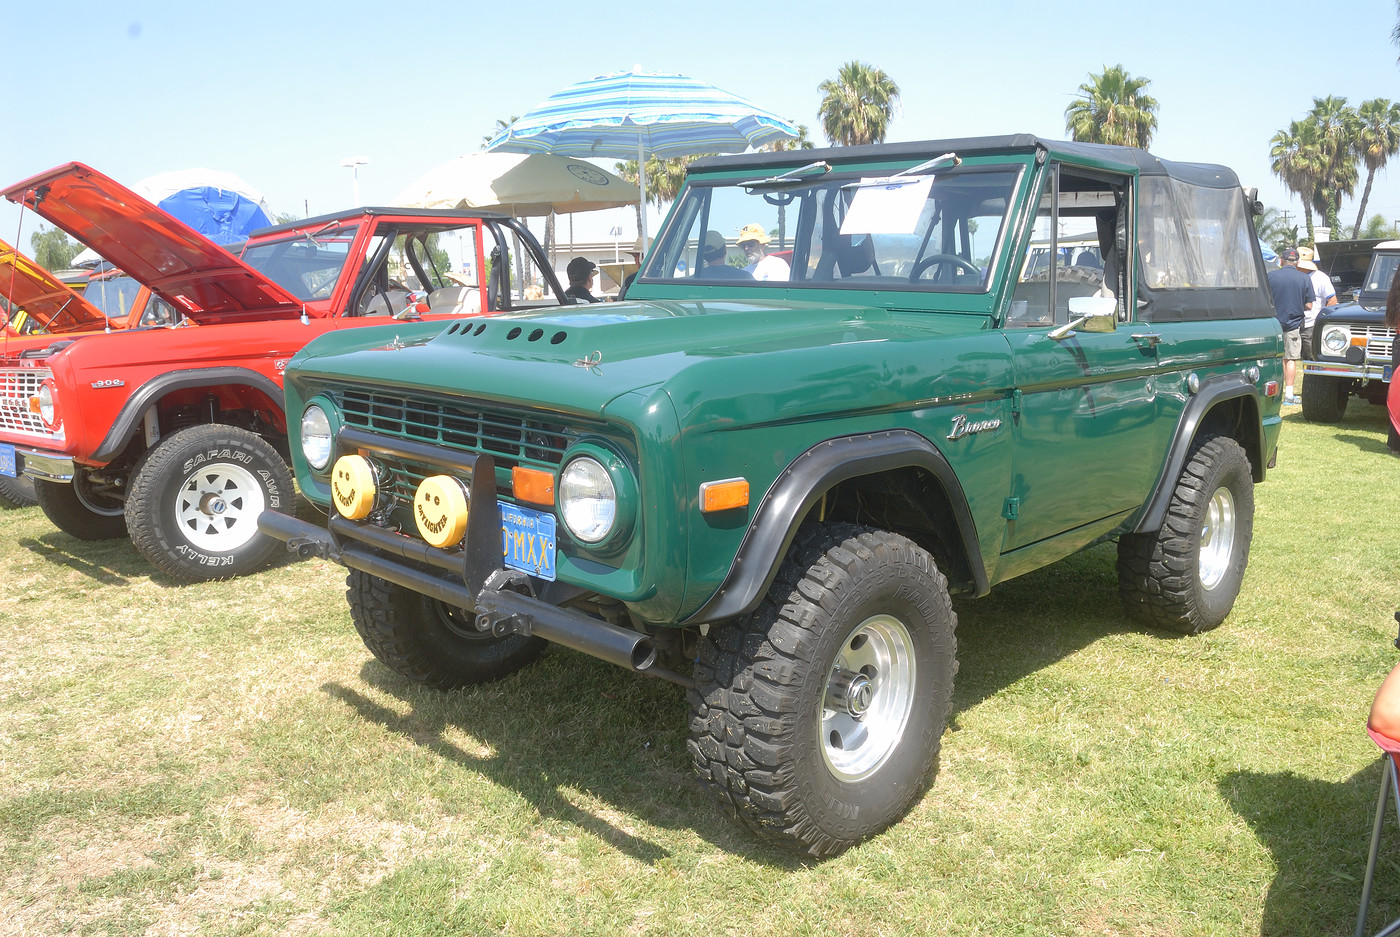 1970 Ford Bronco owned by Ron Wilson DSC 4916